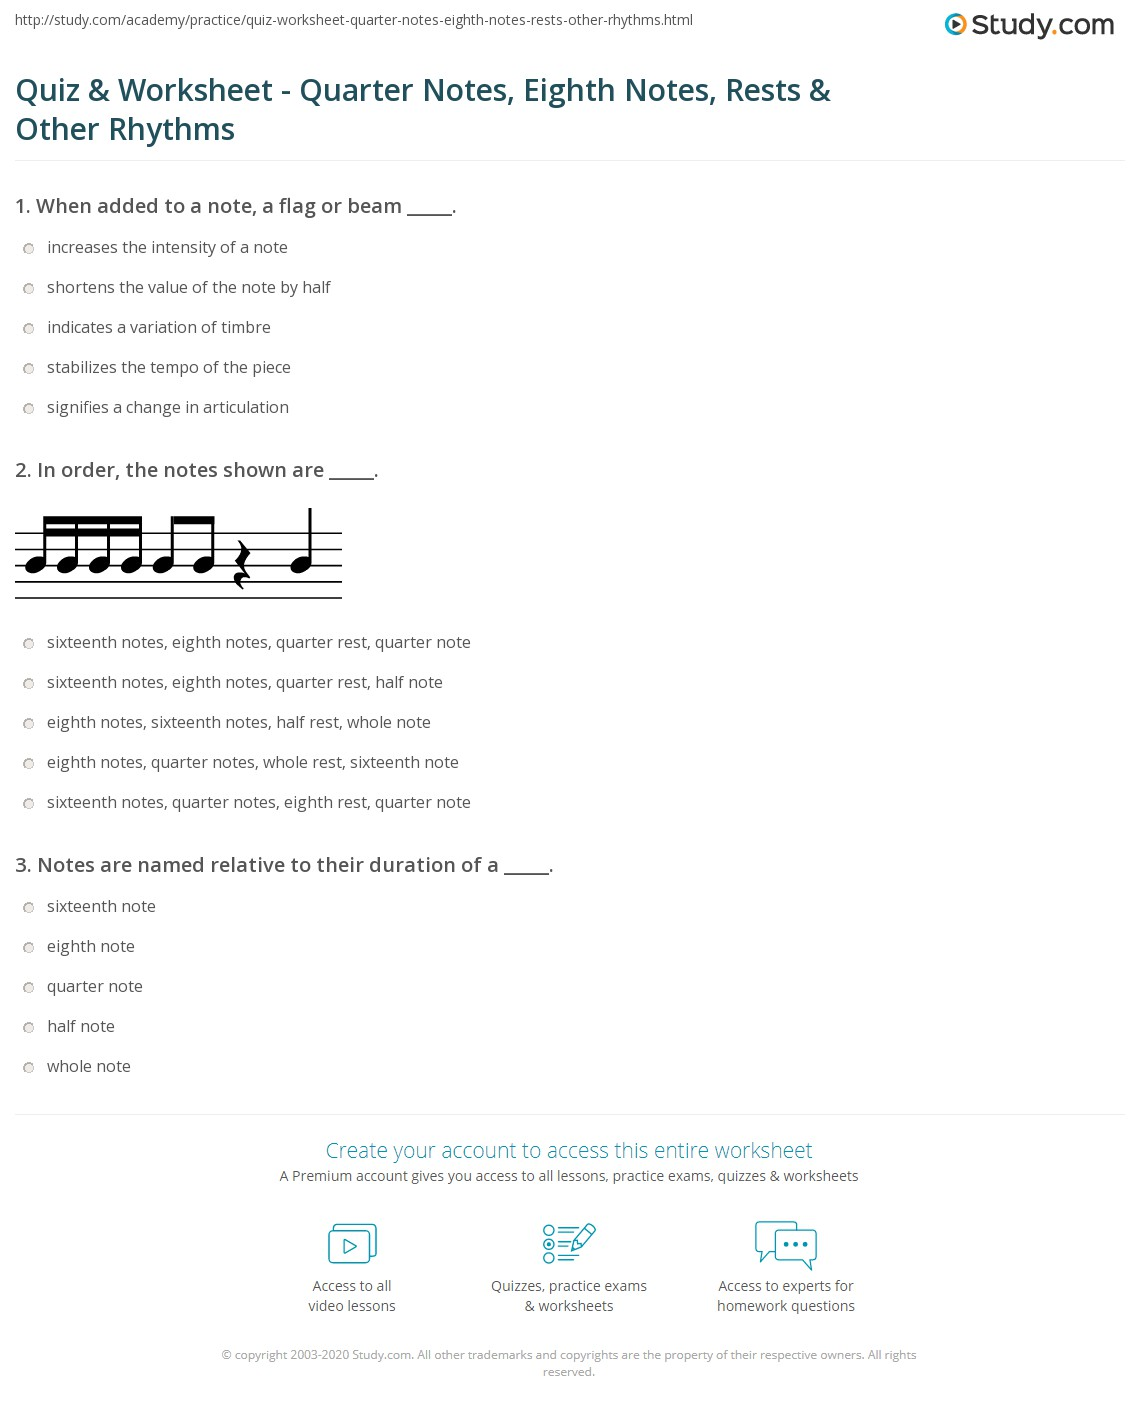 Uncategorized Note Values Worksheet quiz worksheet quarter notes eighth rests other print rhythm basic rhythms worksheet